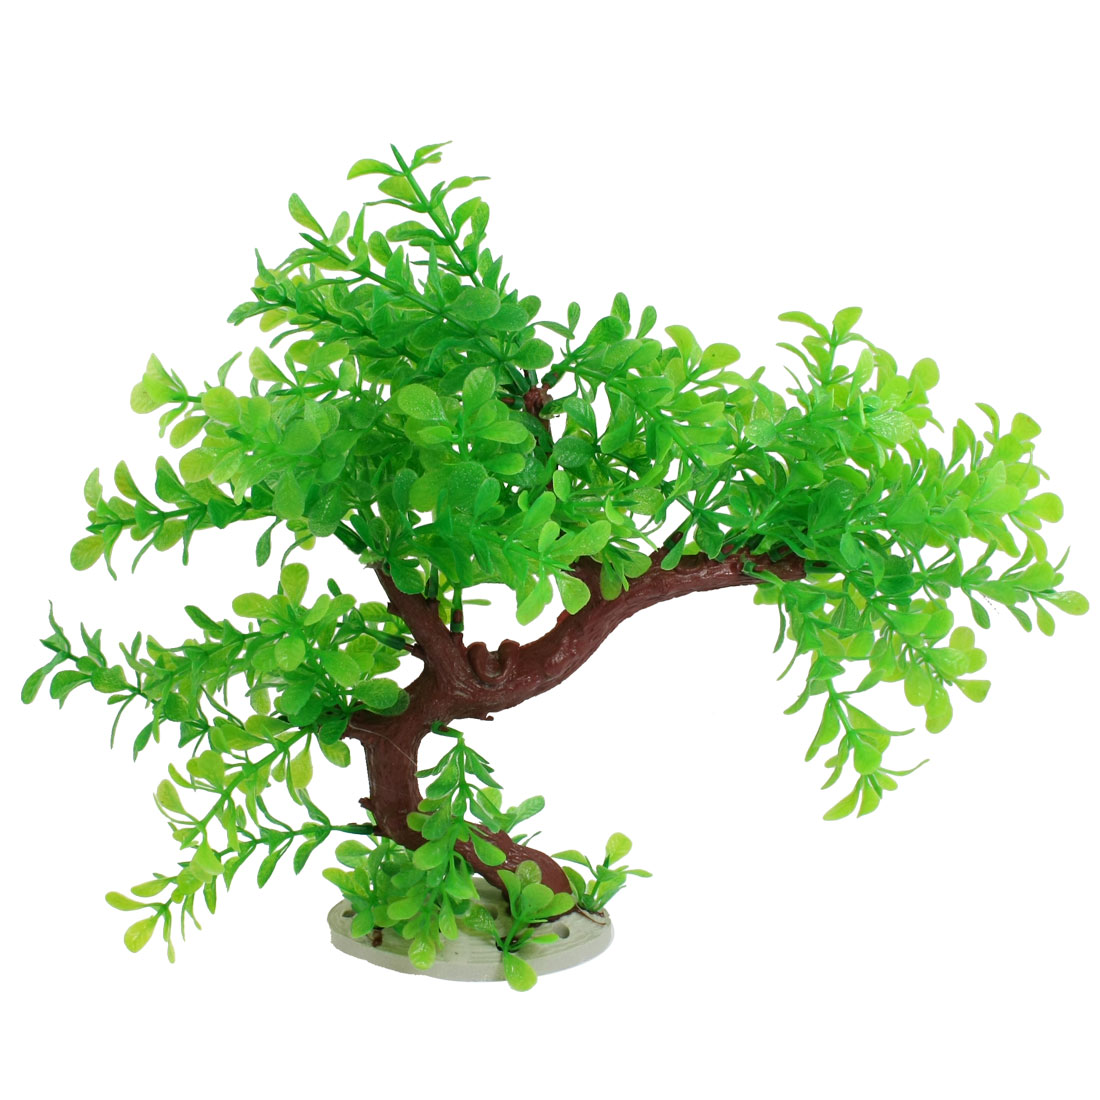 "Green Burgundy Artificial Plastic Tree Plant Decor 10.2"" for Aquarium Tank"